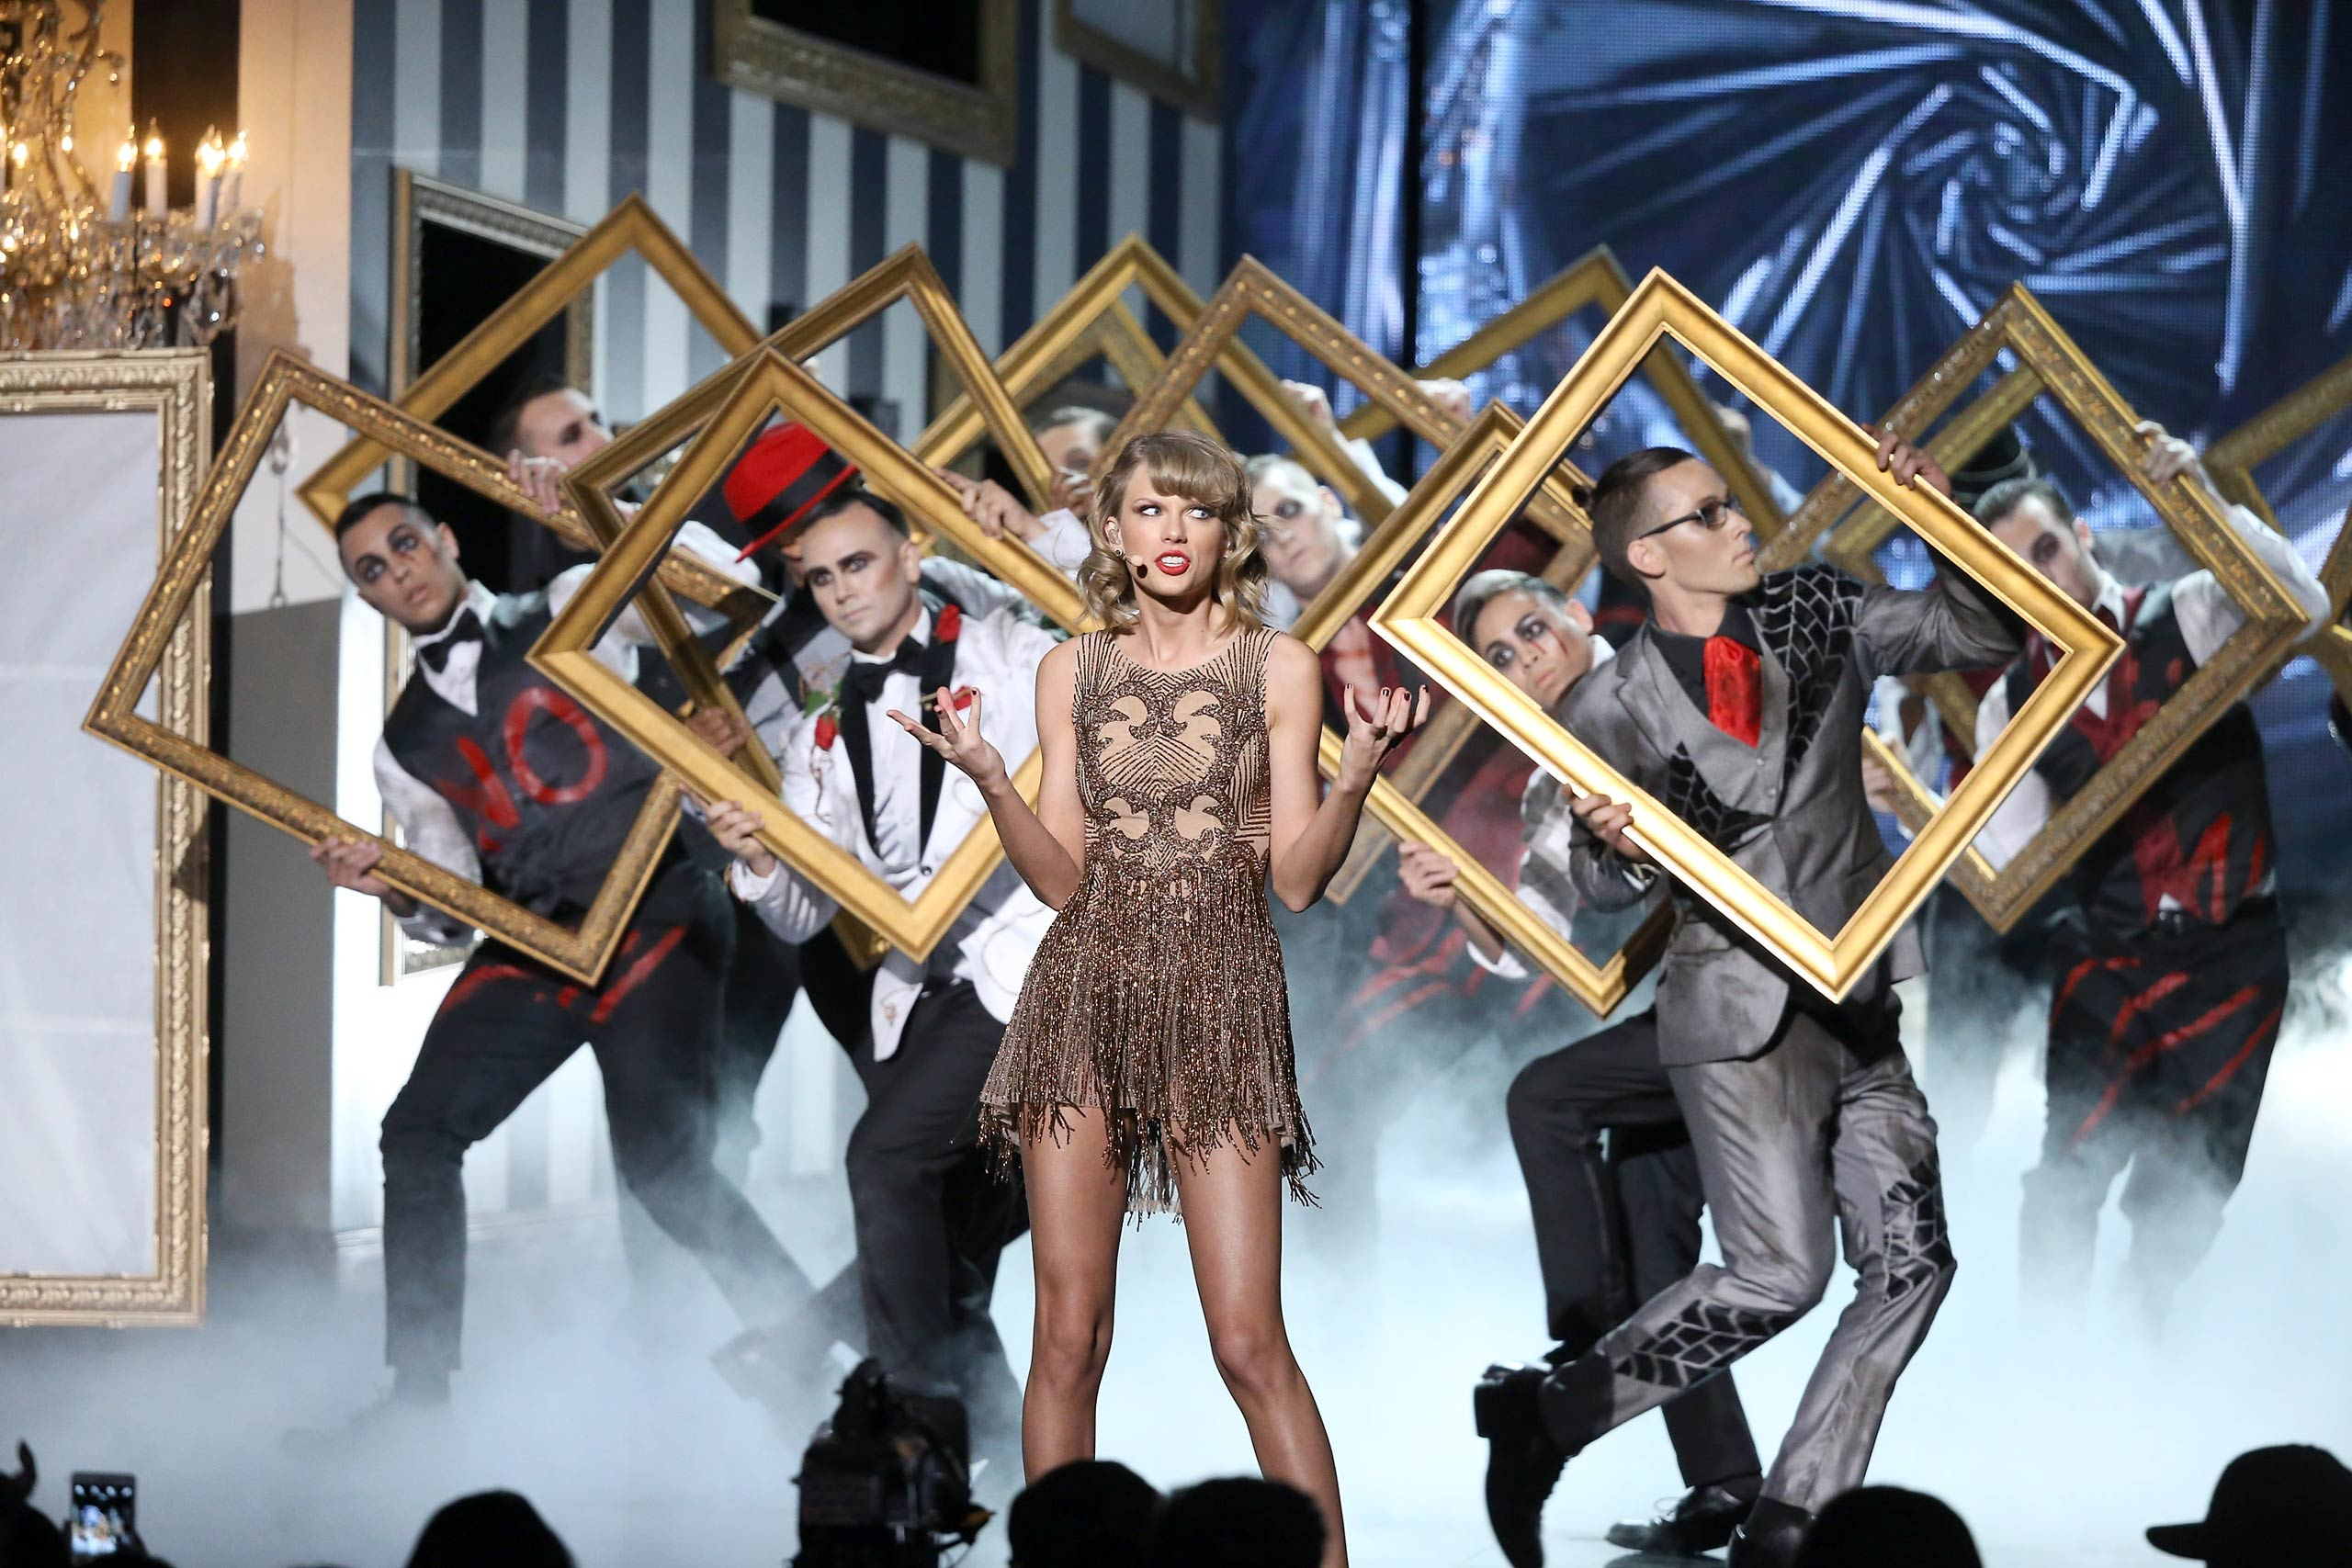 Taylor Swift performs onstage during the 2014 American Music Awards held at Nokia Theatre L.A. Live on Nov. 23, 2014 in Los Angeles, Ca.